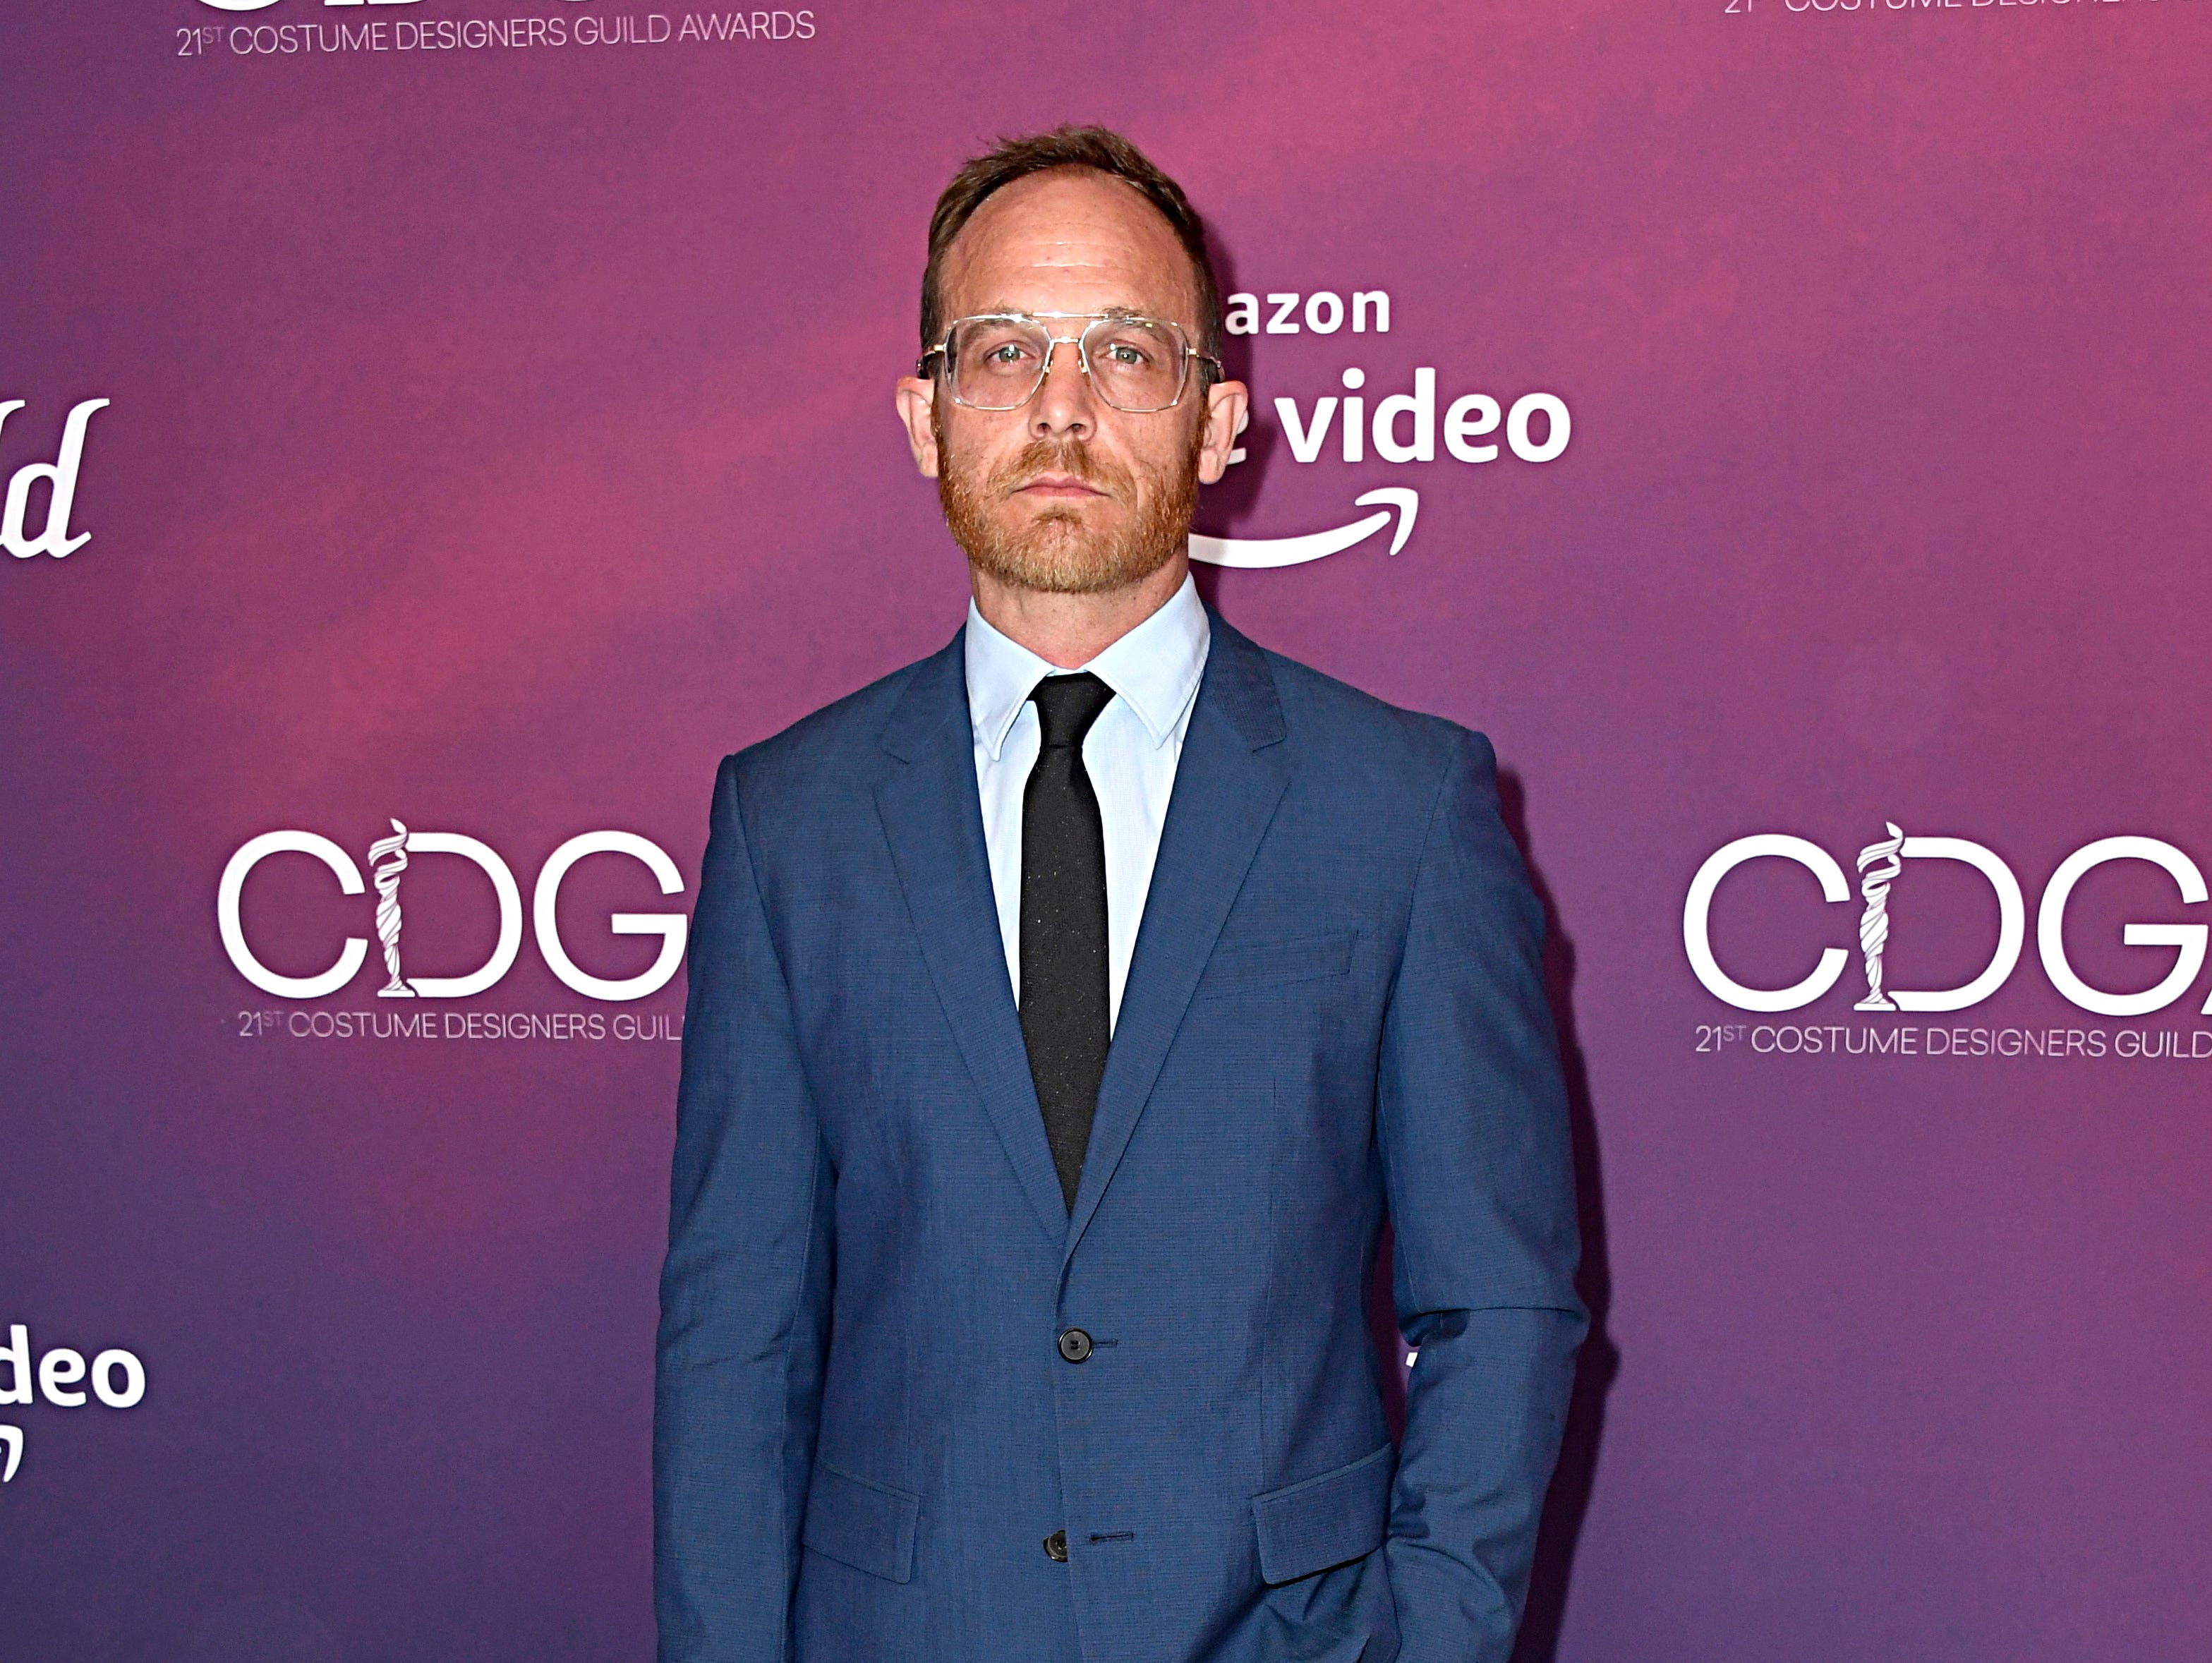 BEVERLY HILLS, CALIFORNIA - FEBRUARY 19: Ethan Embry attends The 21st CDGA (Costume Designers Guild Awards) at The Beverly Hilton Hotel on February 19, 2019 in Beverly Hills, California. (Photo by Frazer Harrison/Getty Images) ORG XMIT: 775282683 ORIG FILE ID: 1130830356